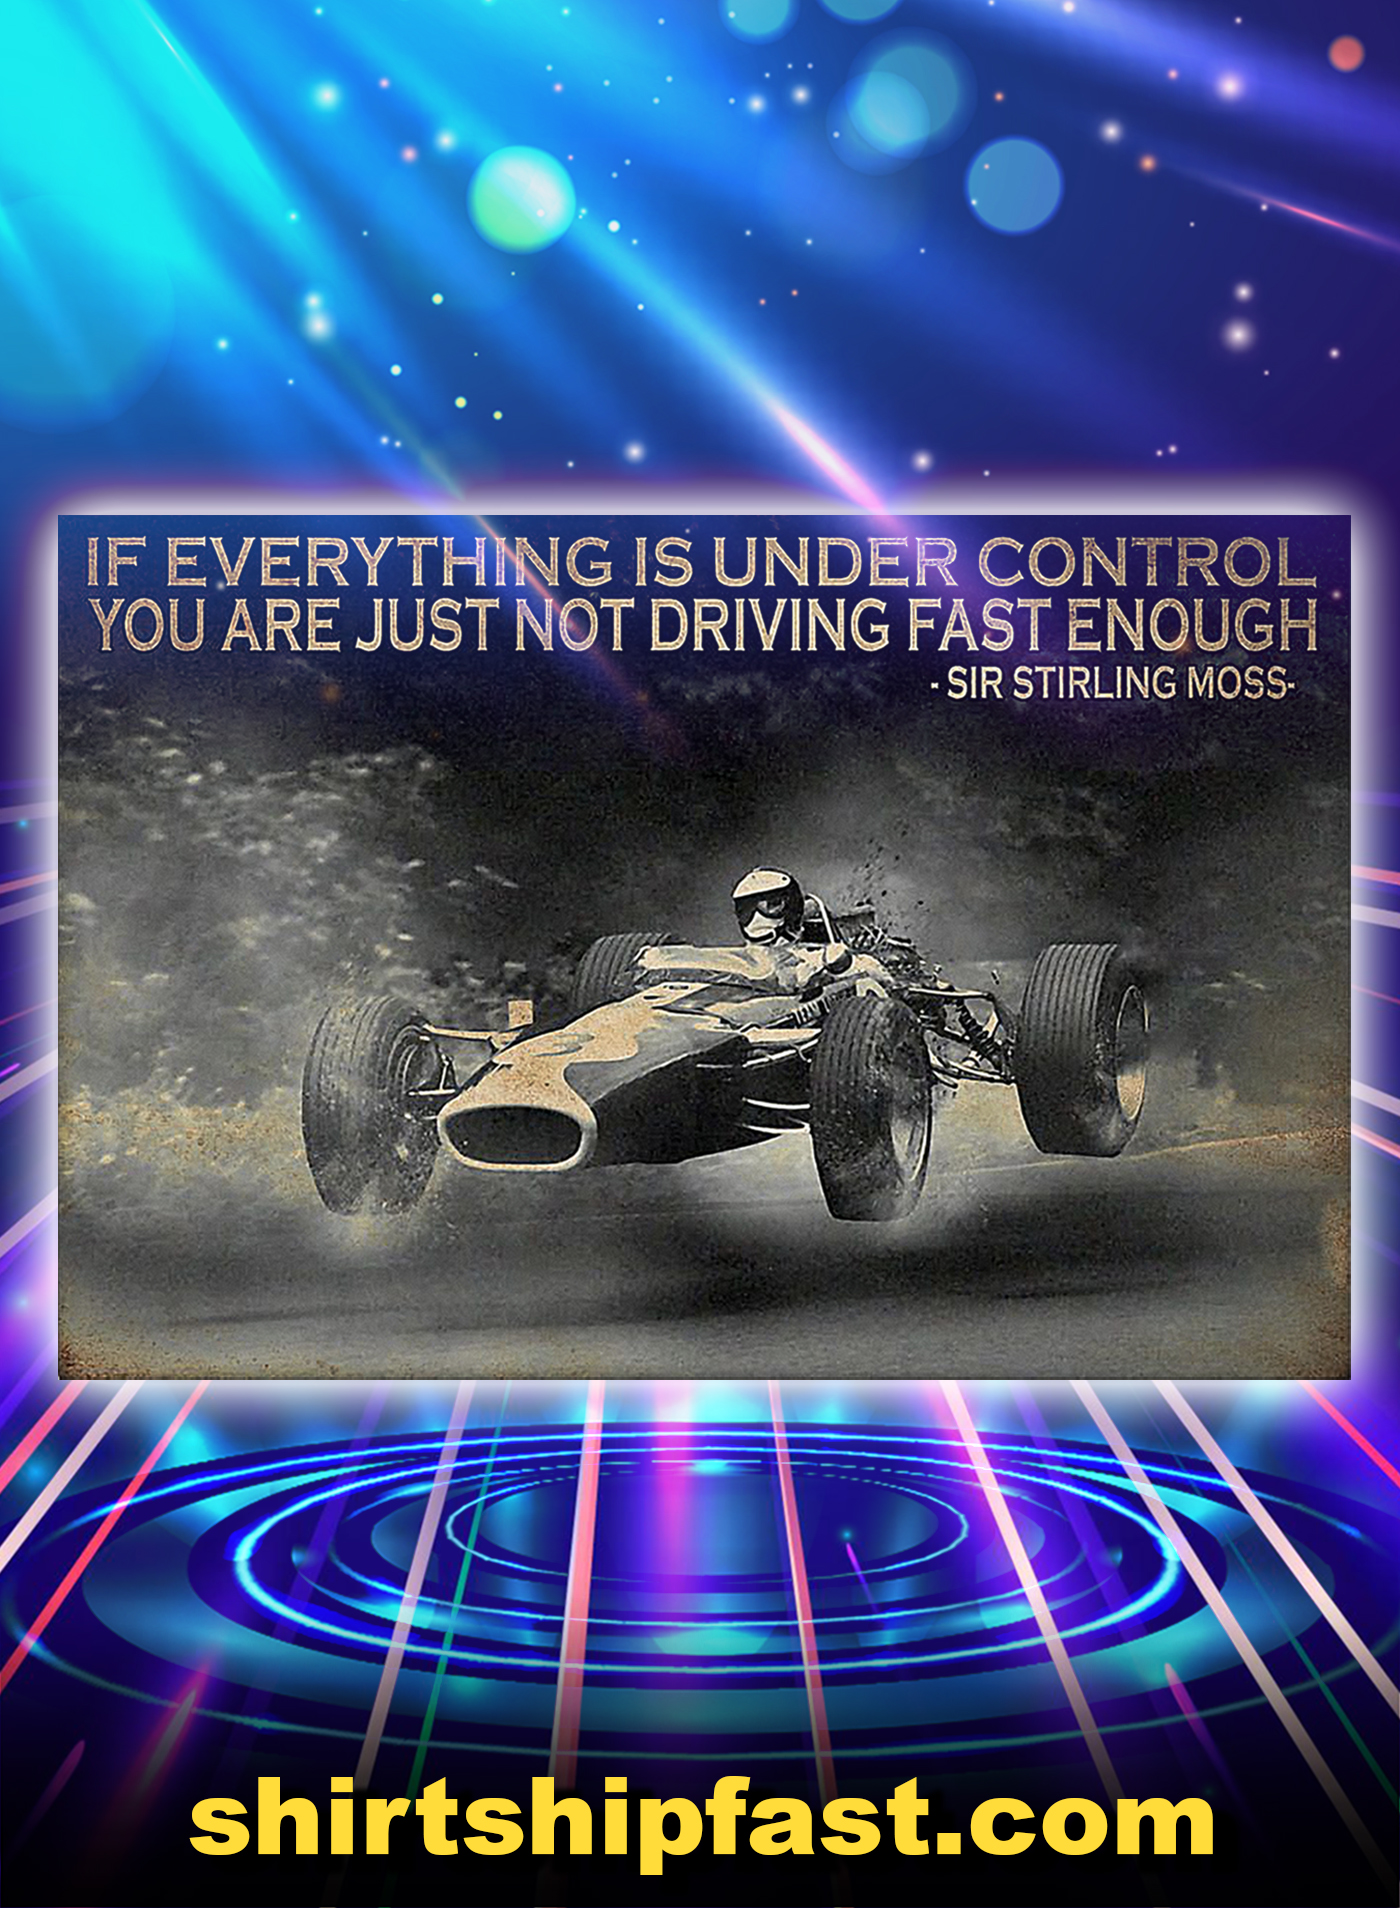 Sir stirling moss If everything is under control you are just not driving fast enough poster - A1